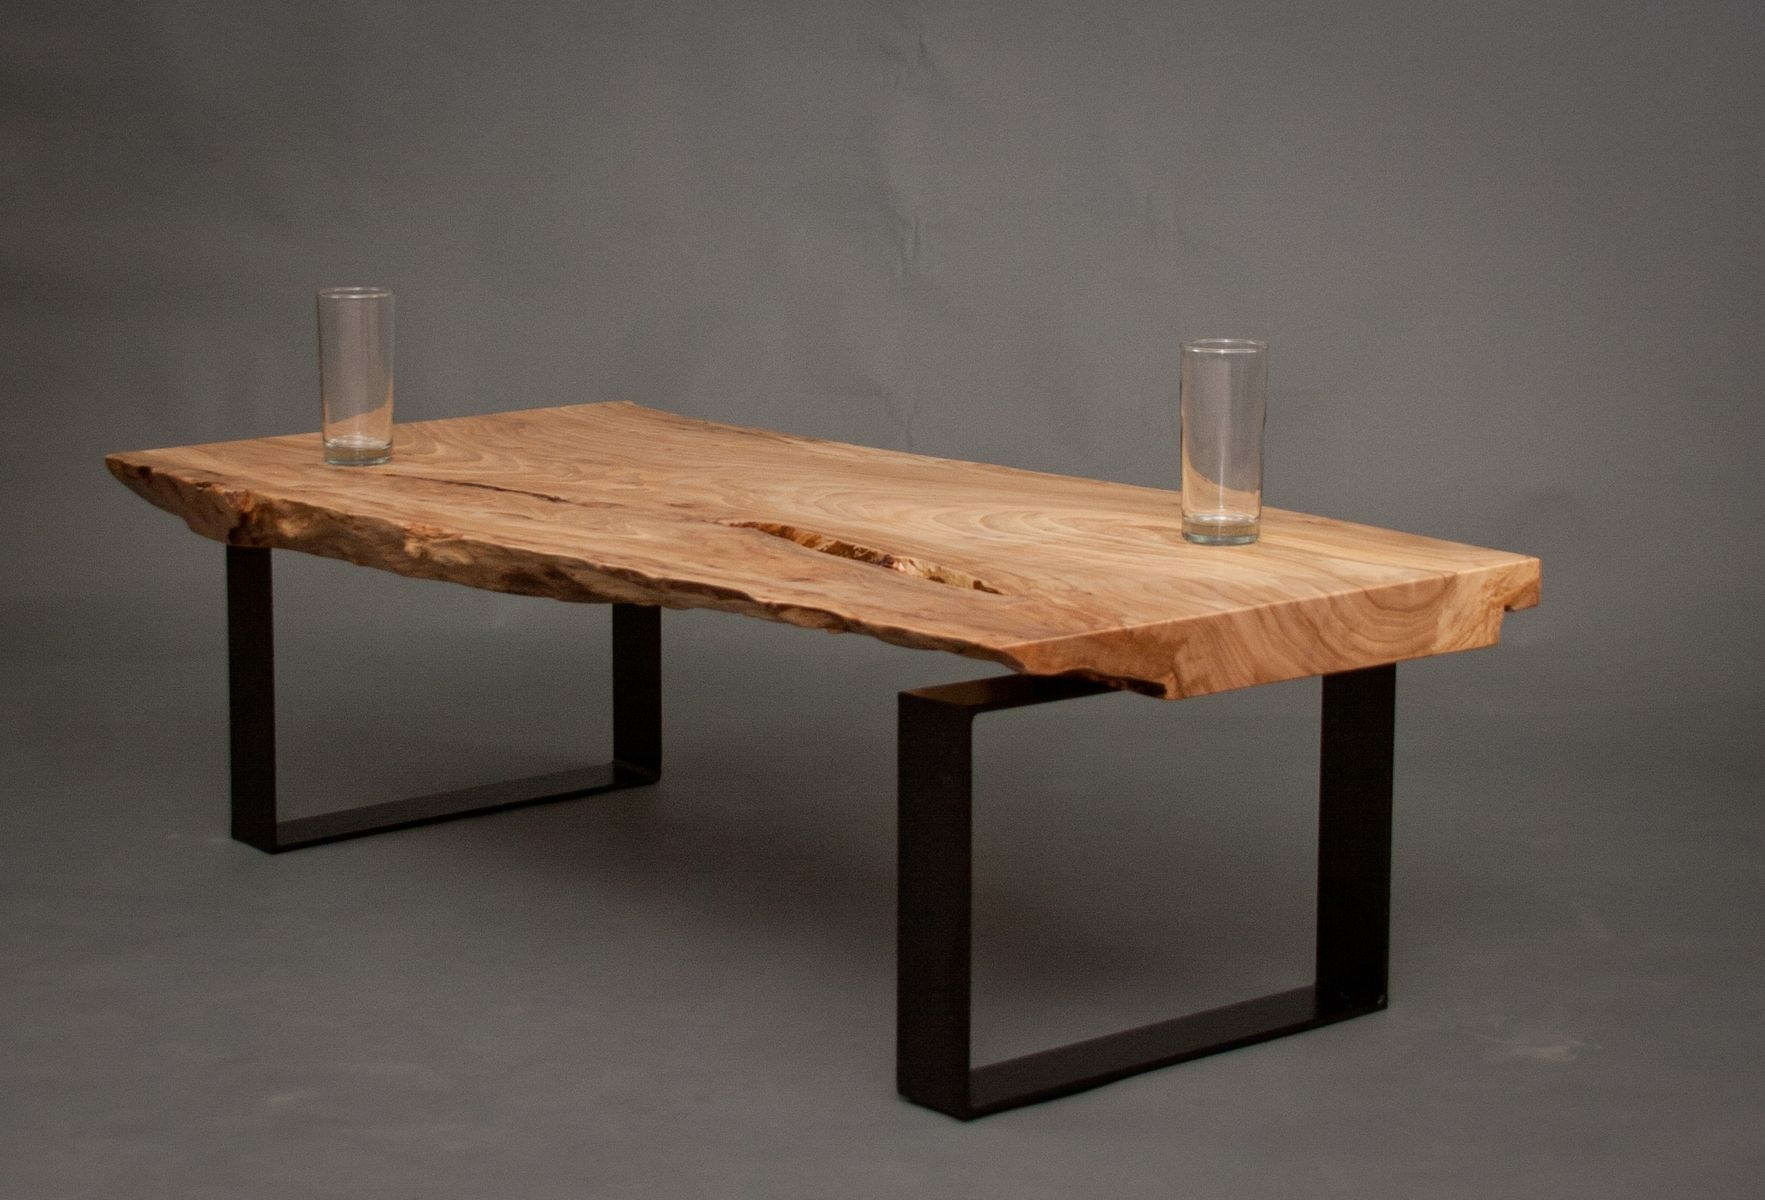 wood table design ideas pictures photo - 5